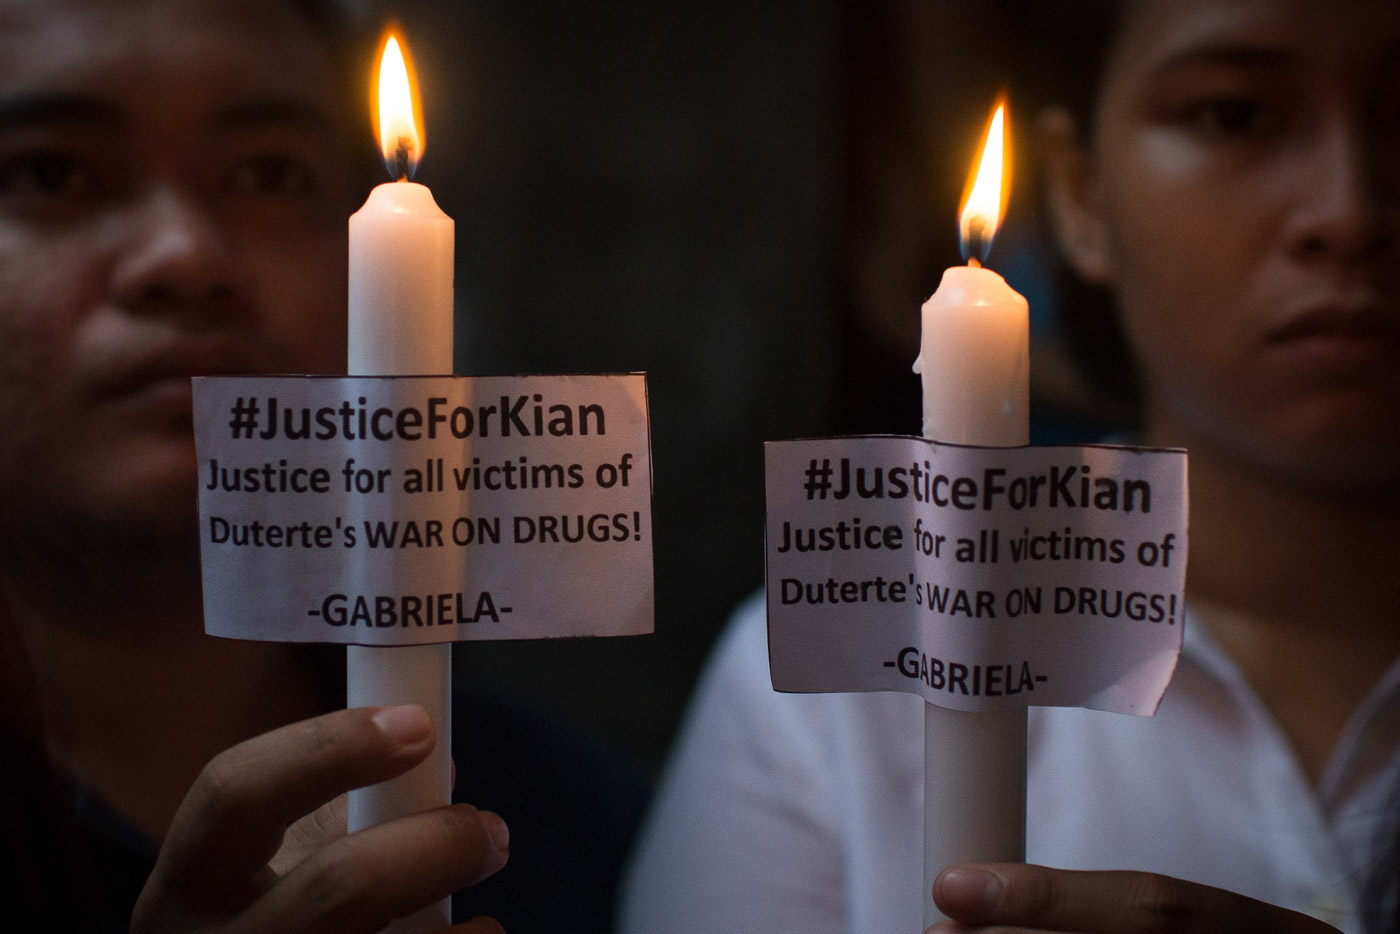 Protesters, neighbors, and friends of Kian Loyd Delos Santos light candles to express their call for justice on the death of the slain kid. Photo by Eloisa Lopez